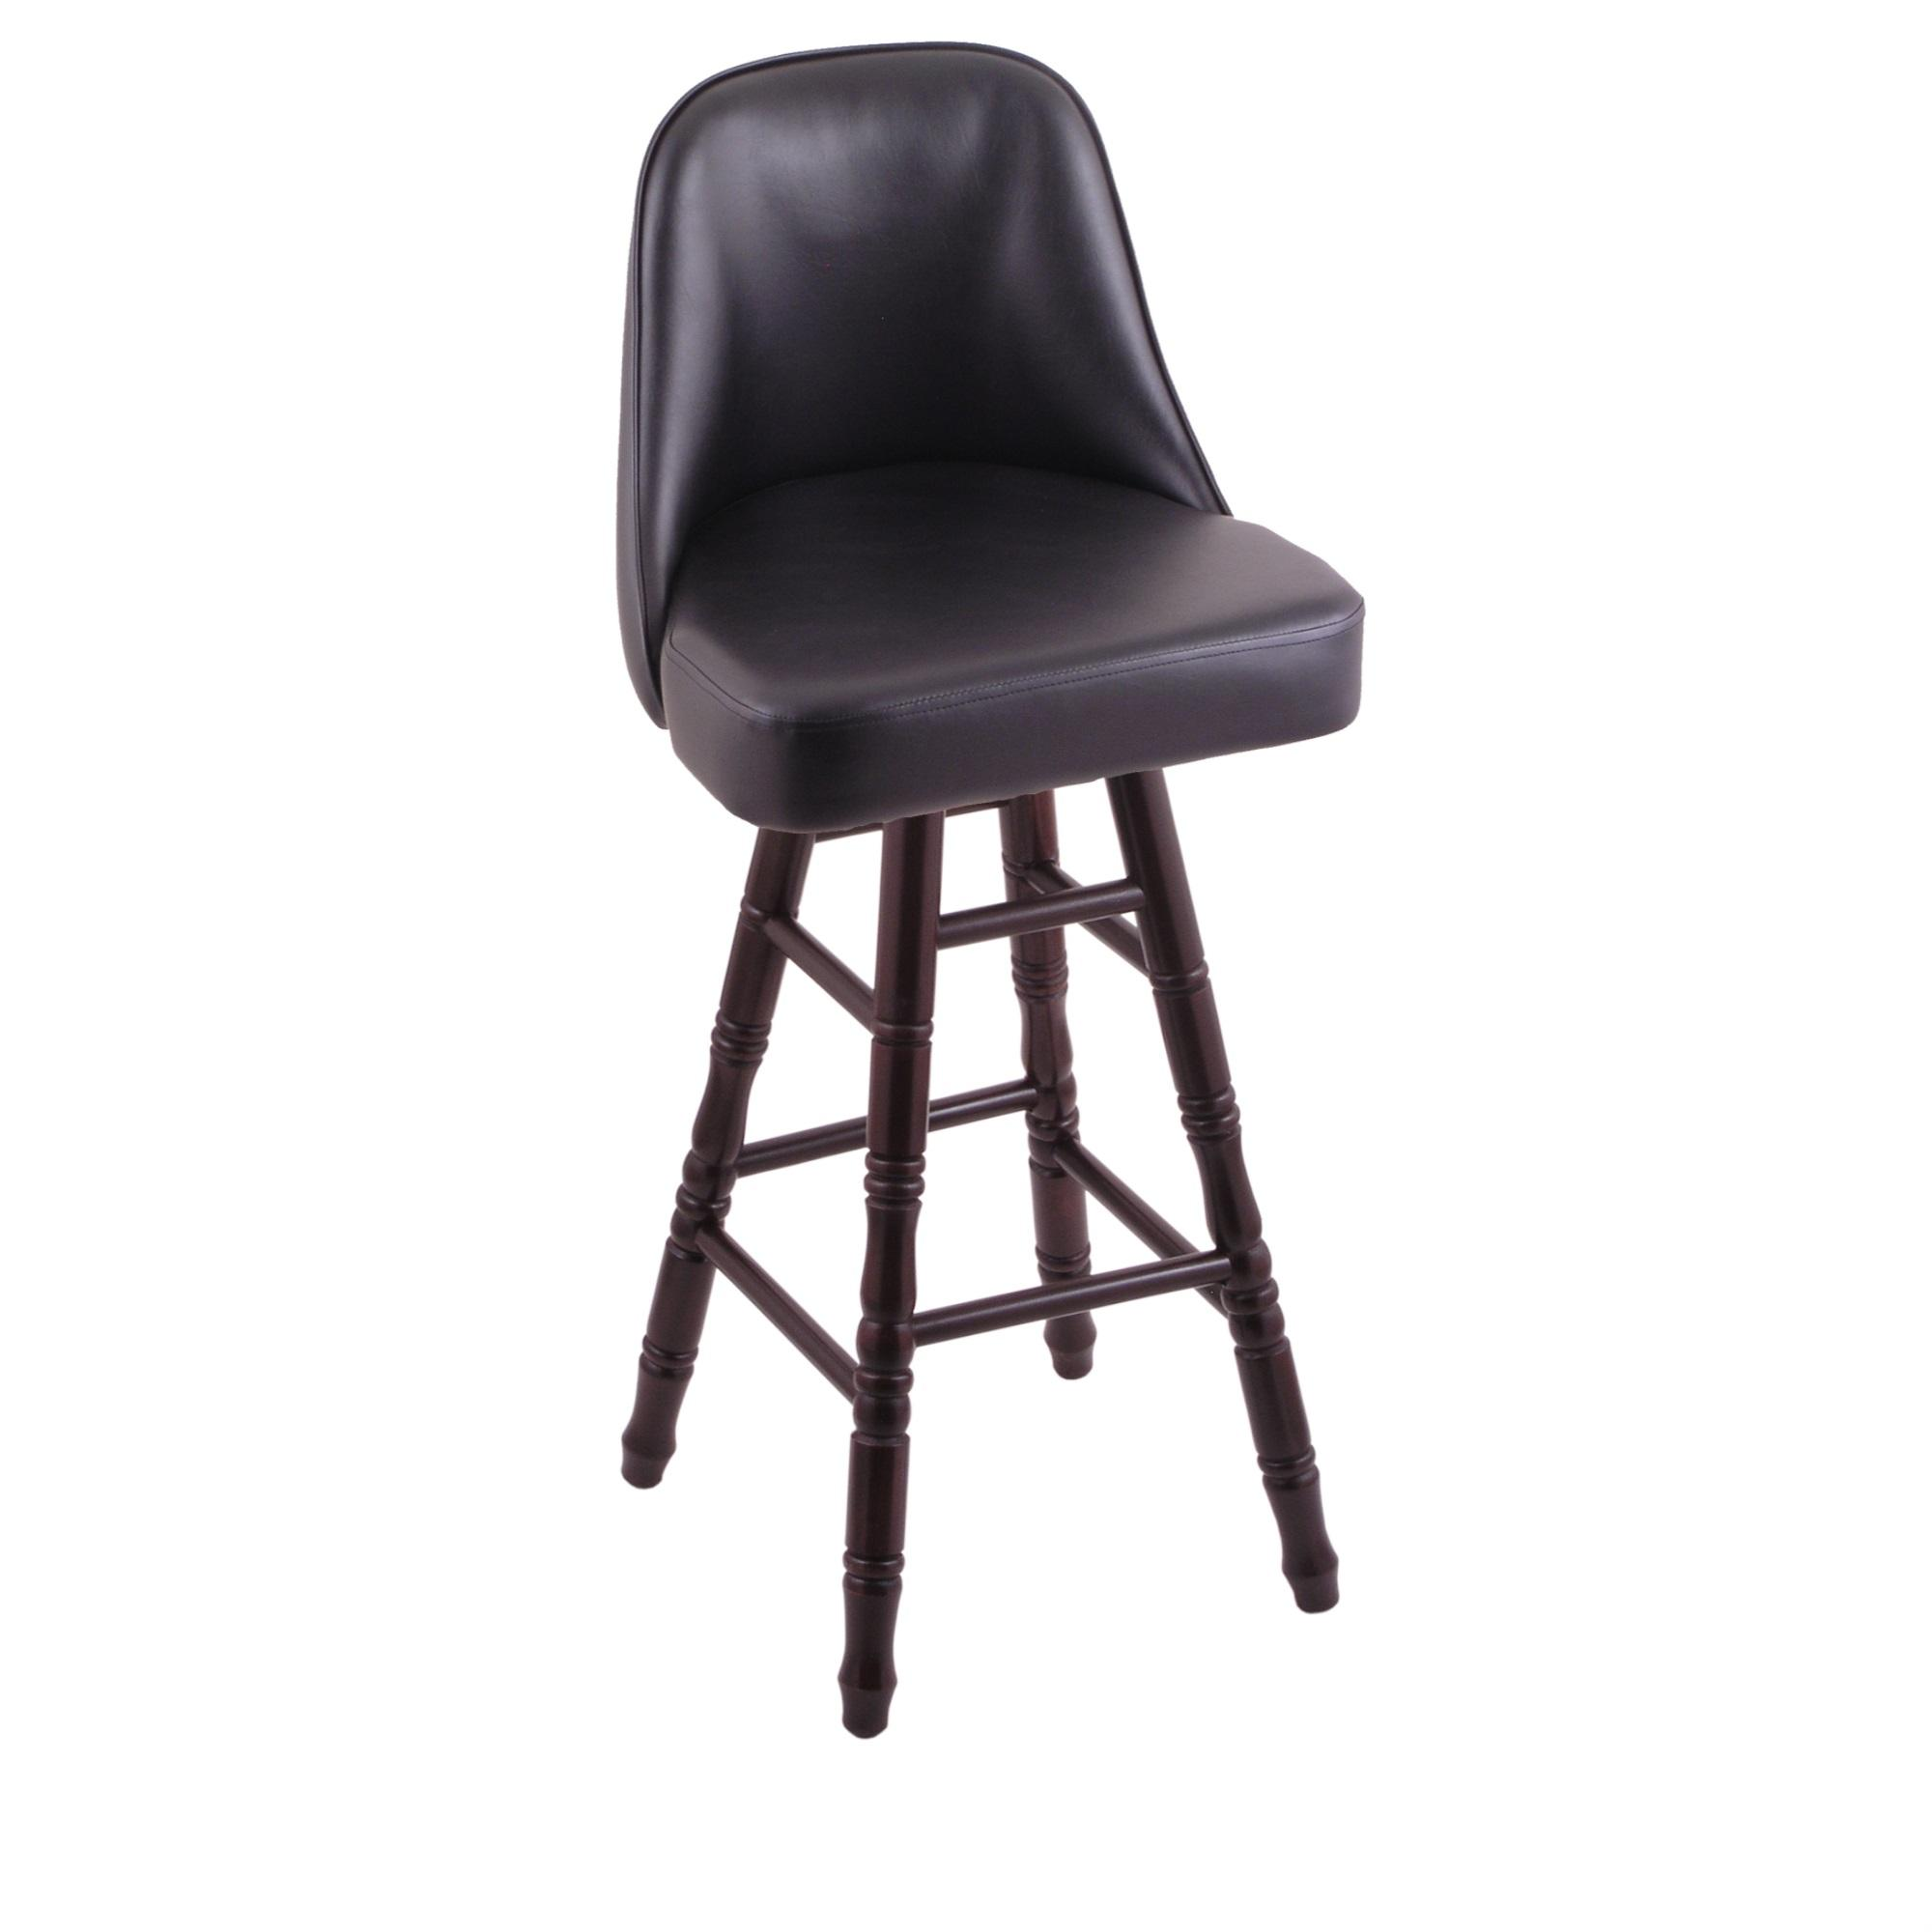 Grizzly Bar Stool with Turned Maple Legs, Dark Cherry Finish, and 360 Swivel